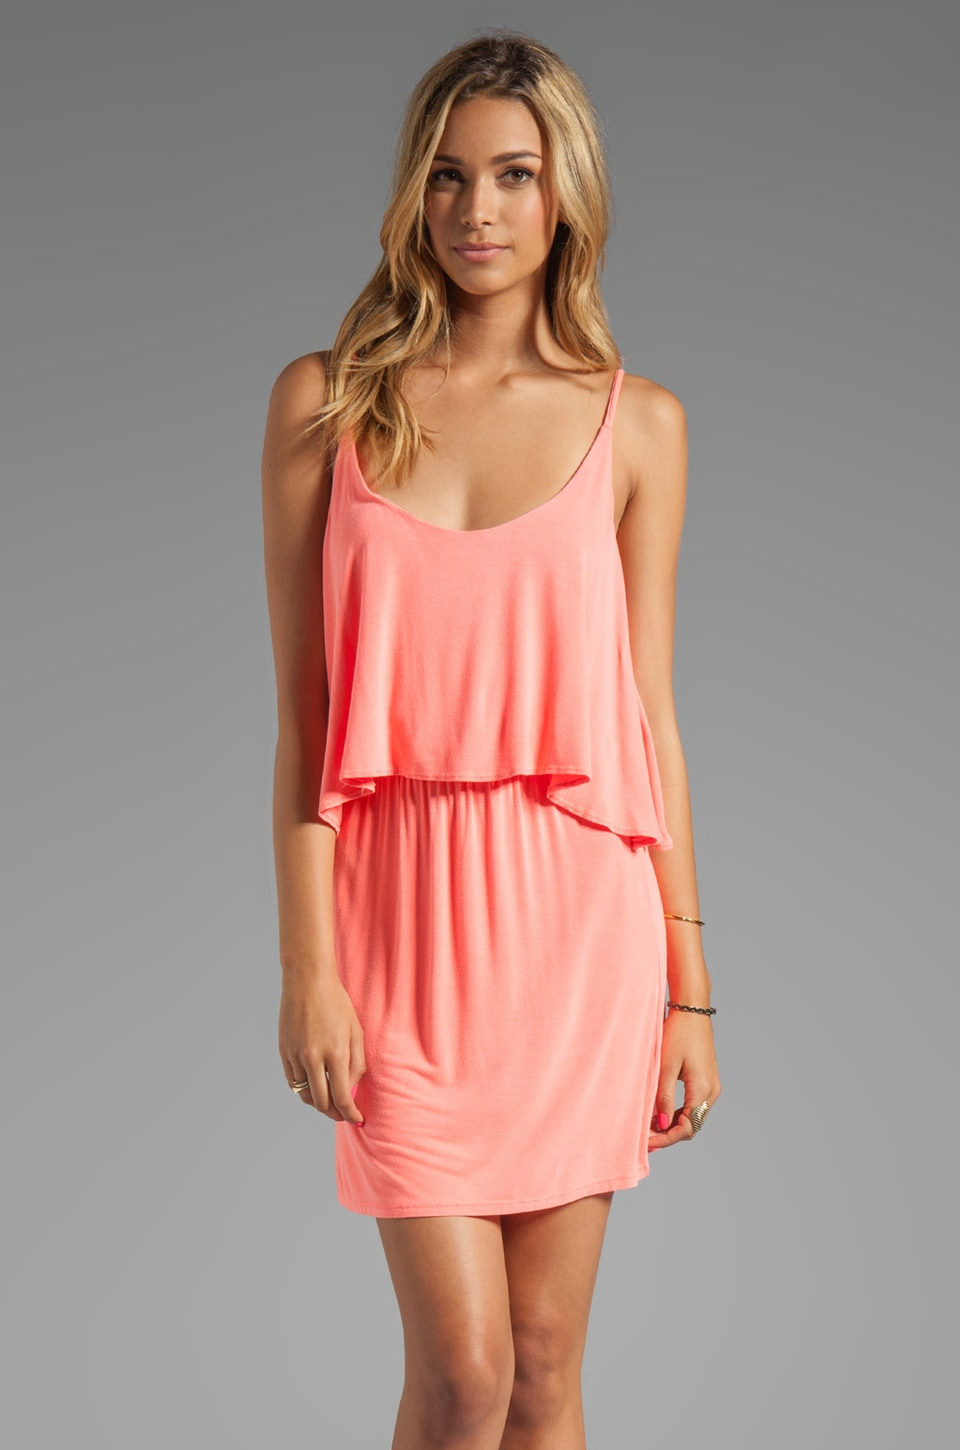 Bobi Jersey Layered Dress in Neon Coral